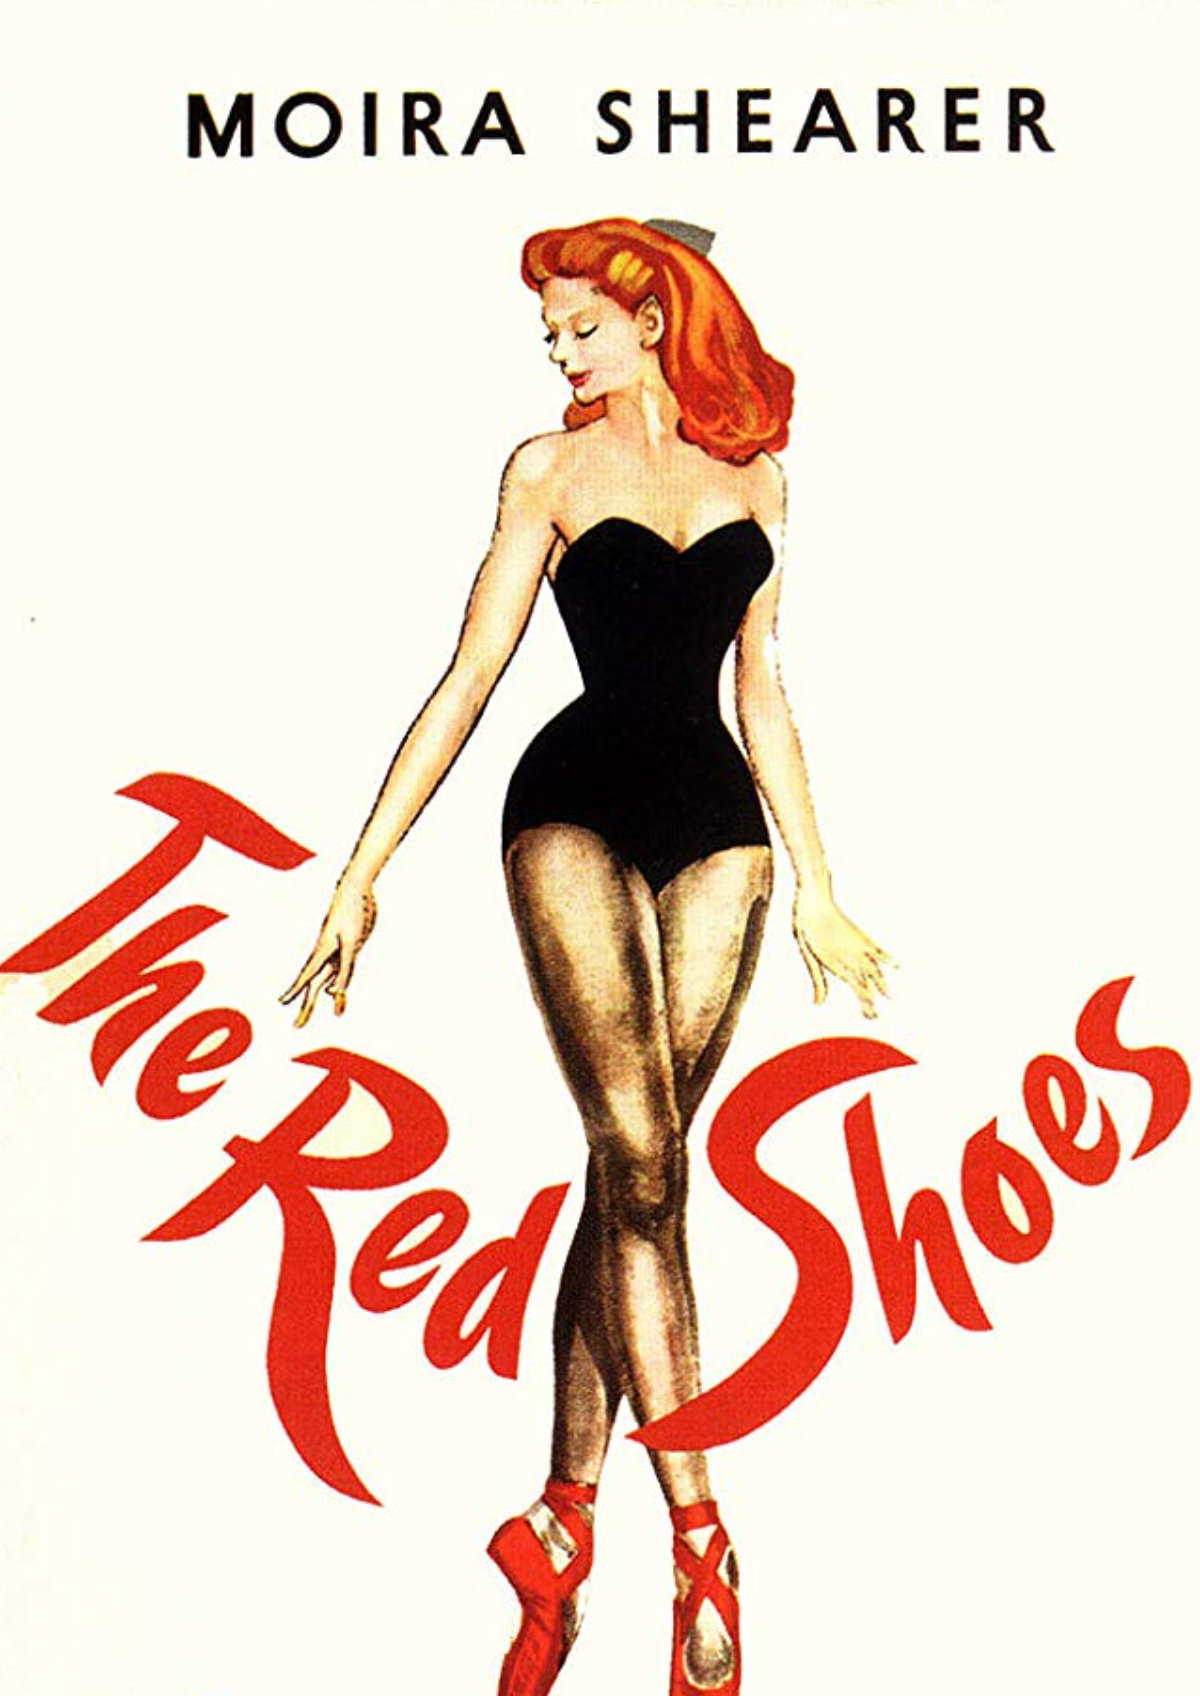 'The Red Shoes' movie poster